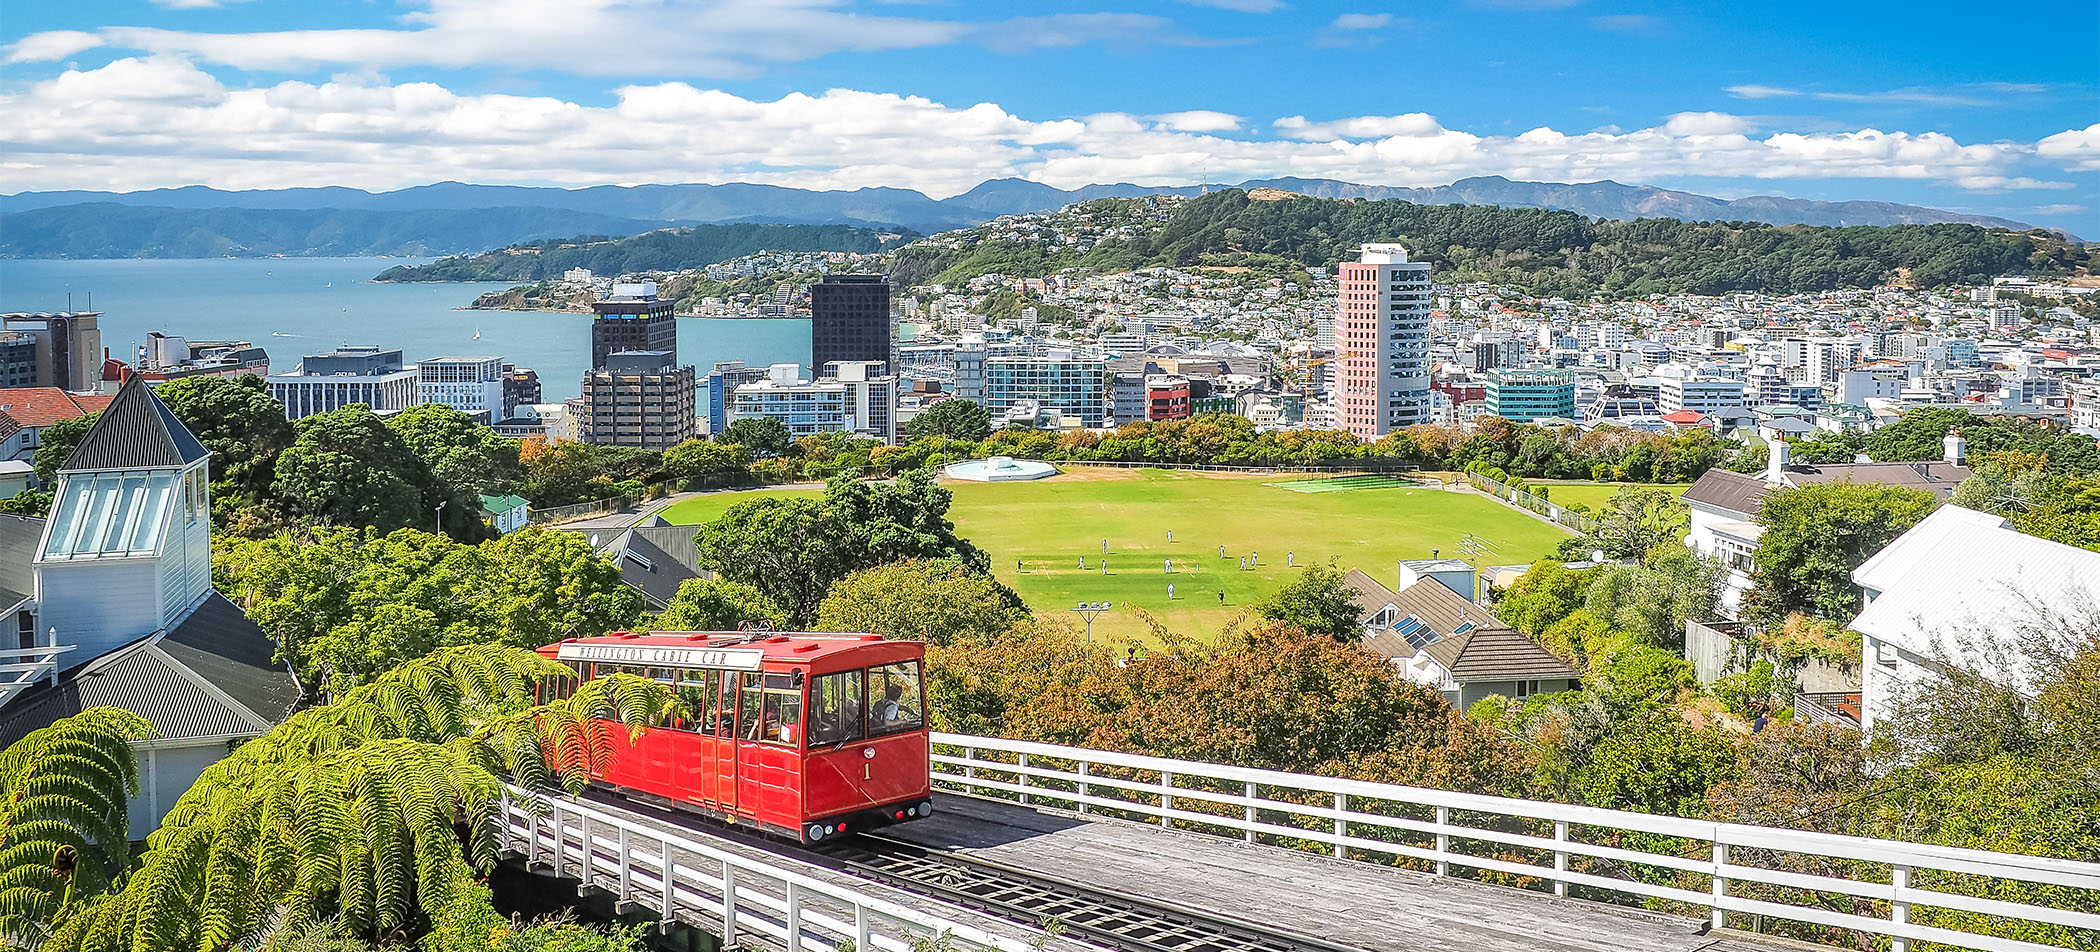 New Zealand is a destination for Second Year Experience Abroad